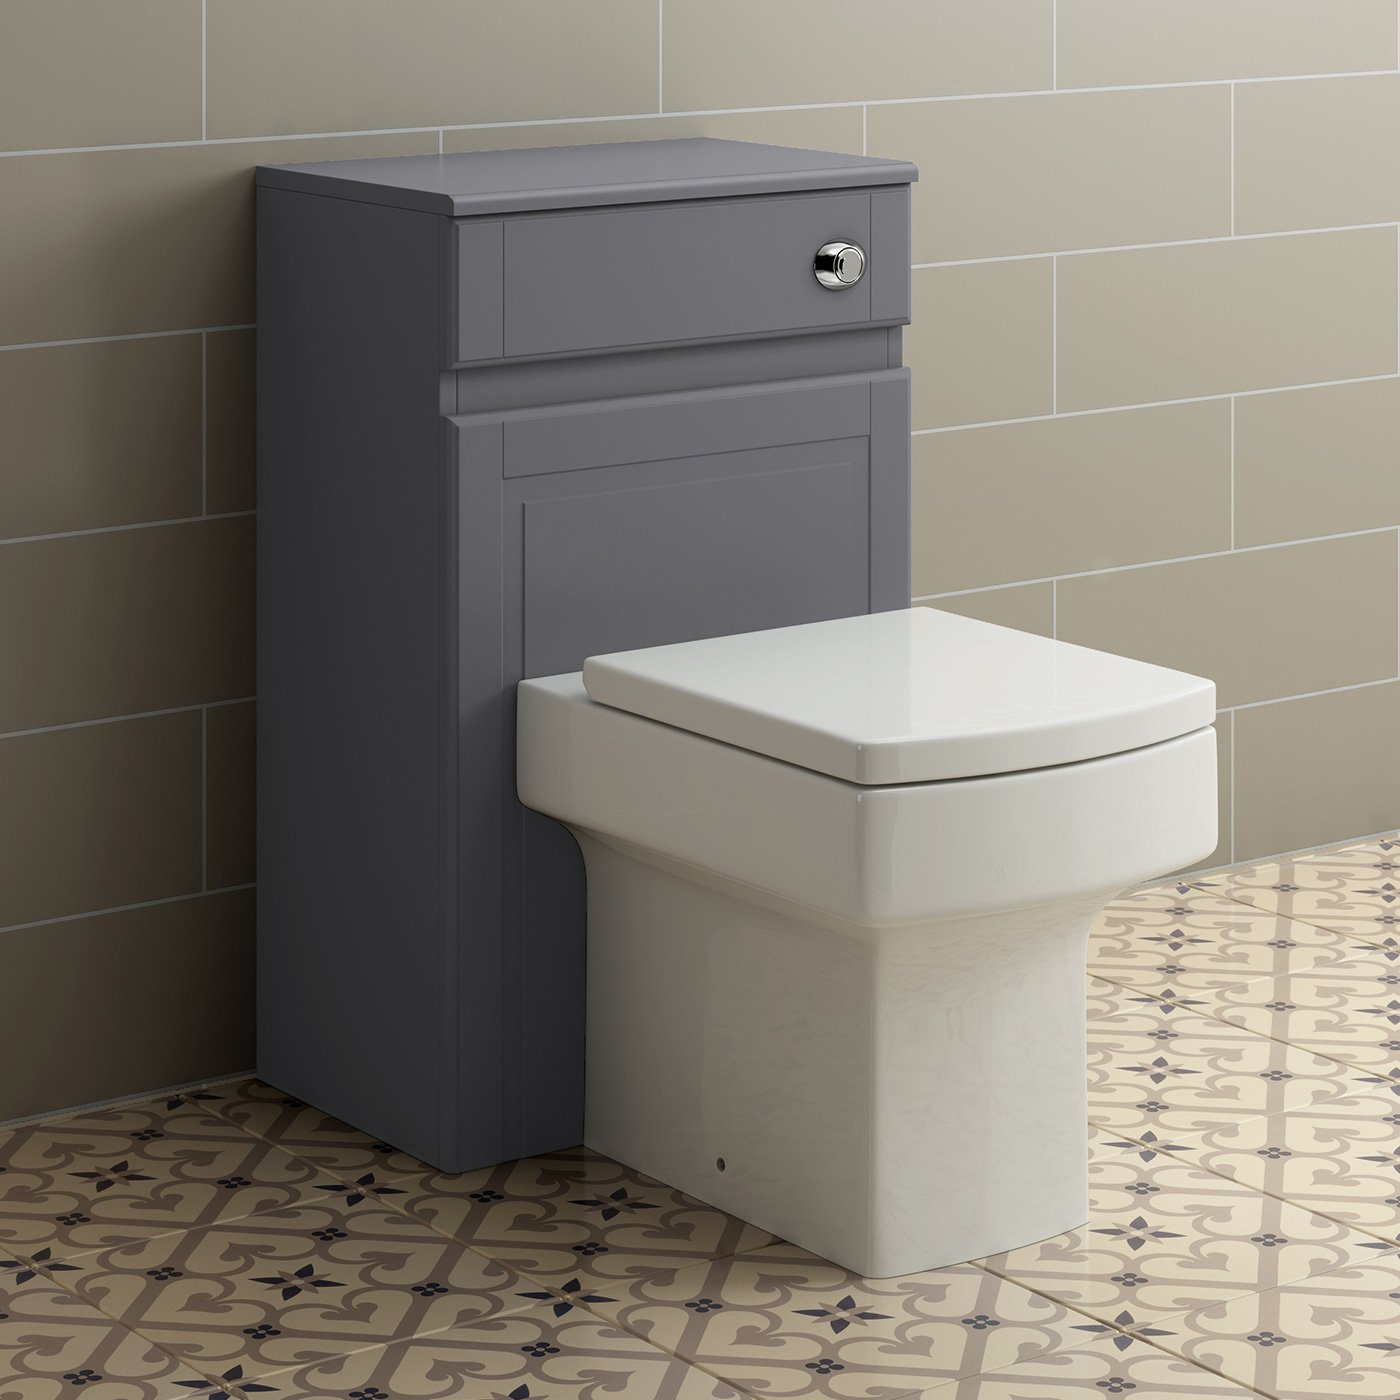 500mm Grey Back To Wall Toilet Concealed Cistern Housing Unit Bathroom Furniture